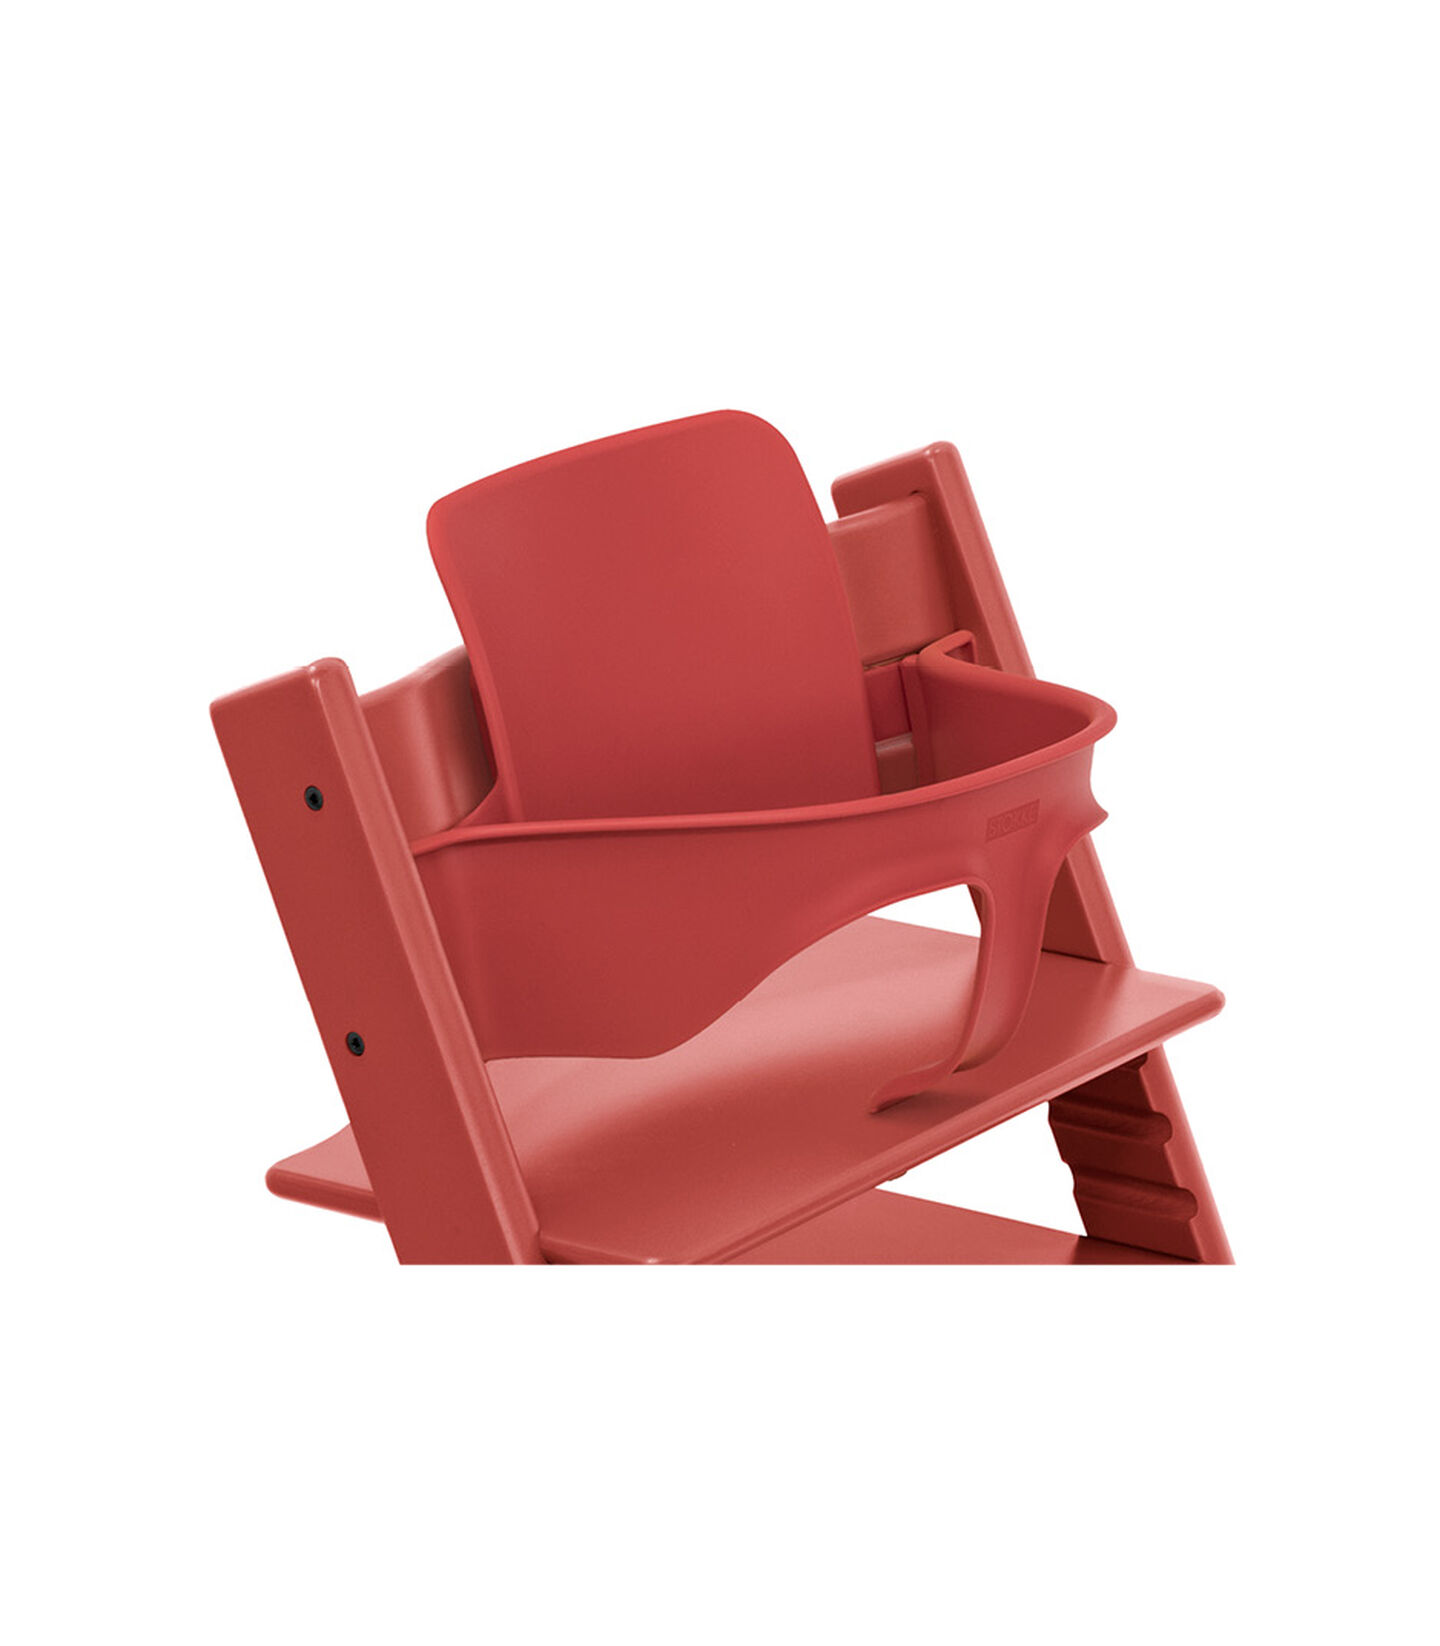 Tripp Trapp® chair Warm Red, Beech Wood, with Baby Set. Close-up. view 2